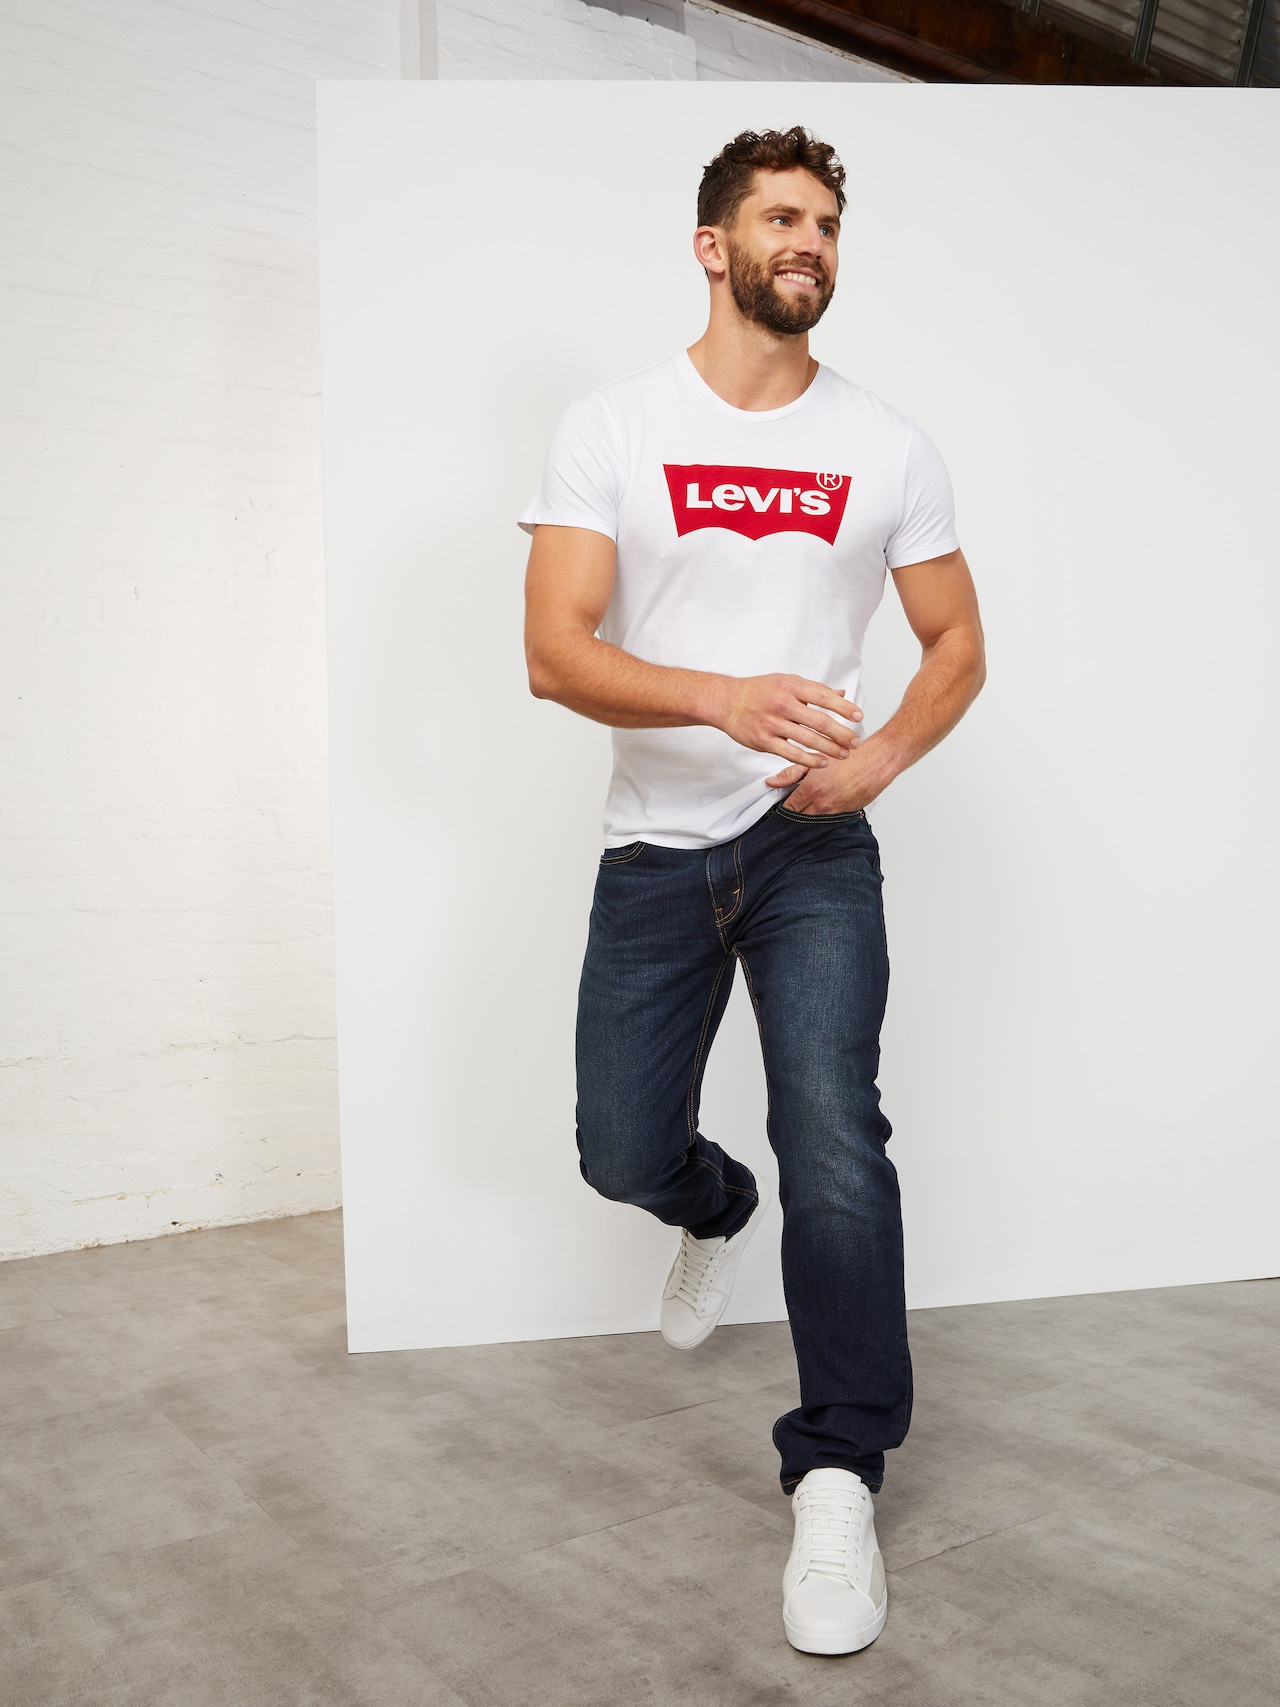 c95a7870bc2 Levi's 502 Taper Jean In Sequoia Blue - Just Jeans Online